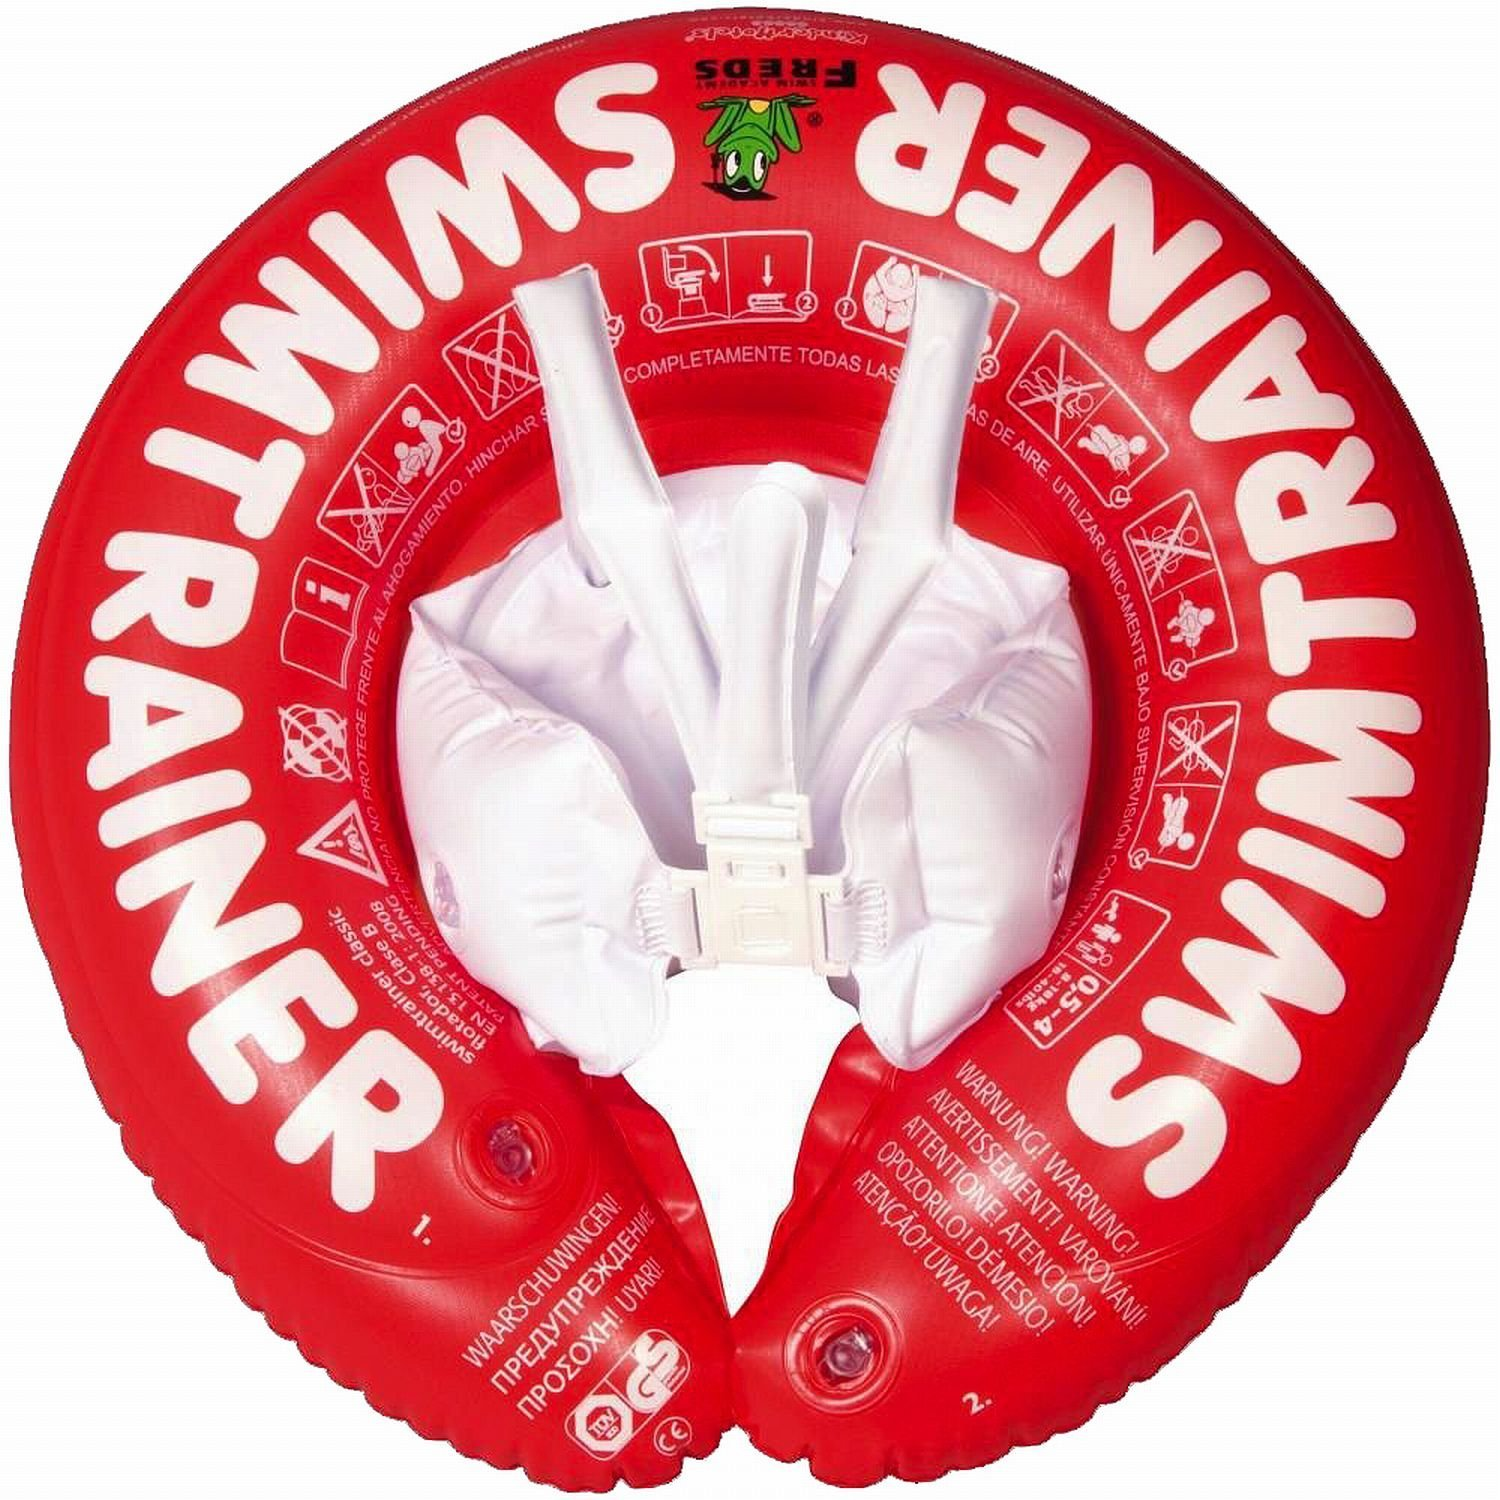 Fred's Swim Academy 10102 SwimTrainer Classic - Red (3 months - 4 years) by FREDS SWIM ACADEMY